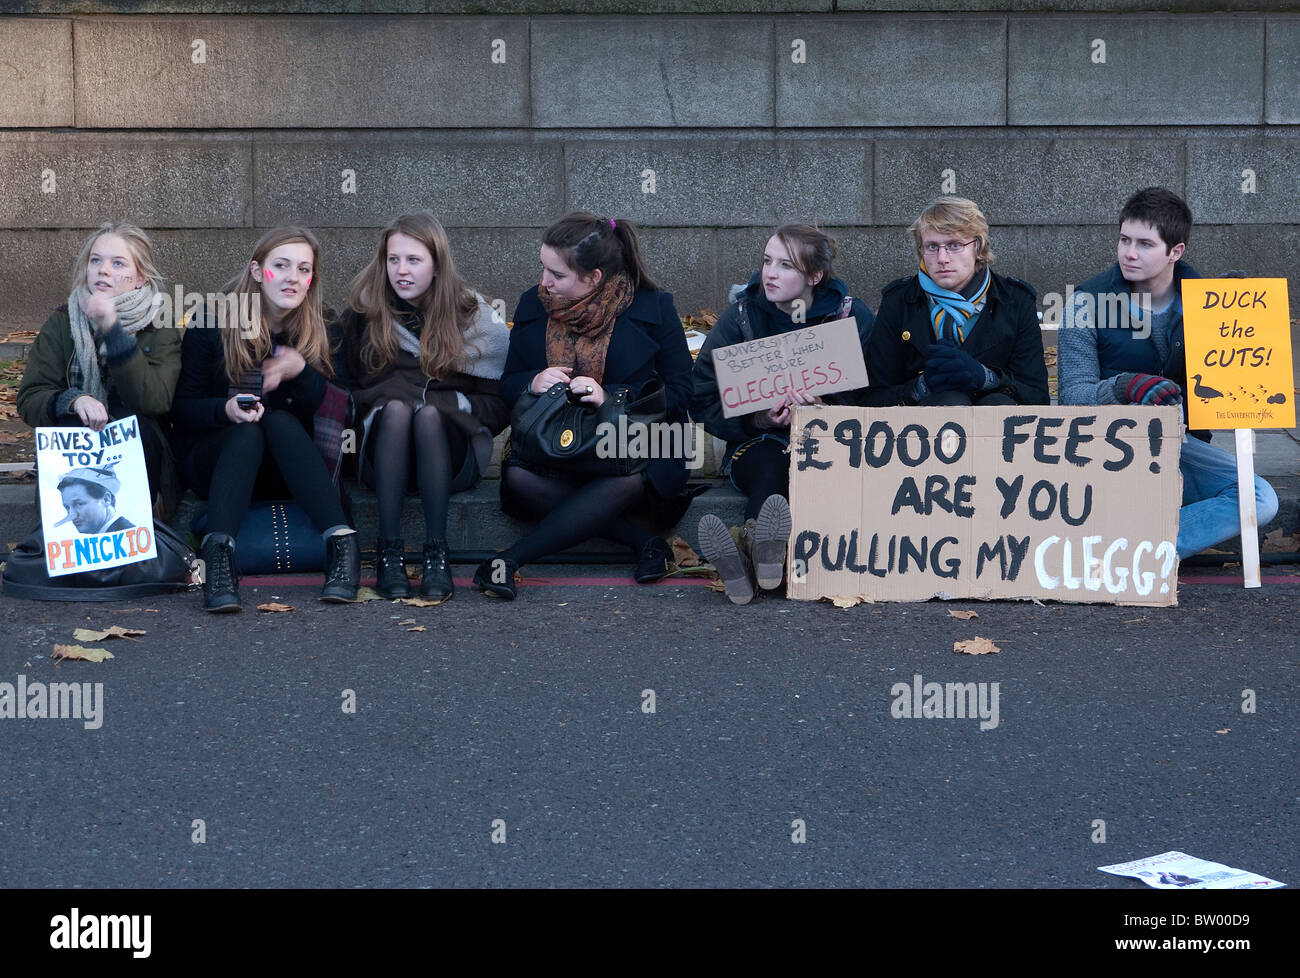 Education fees demo London - Stock Image